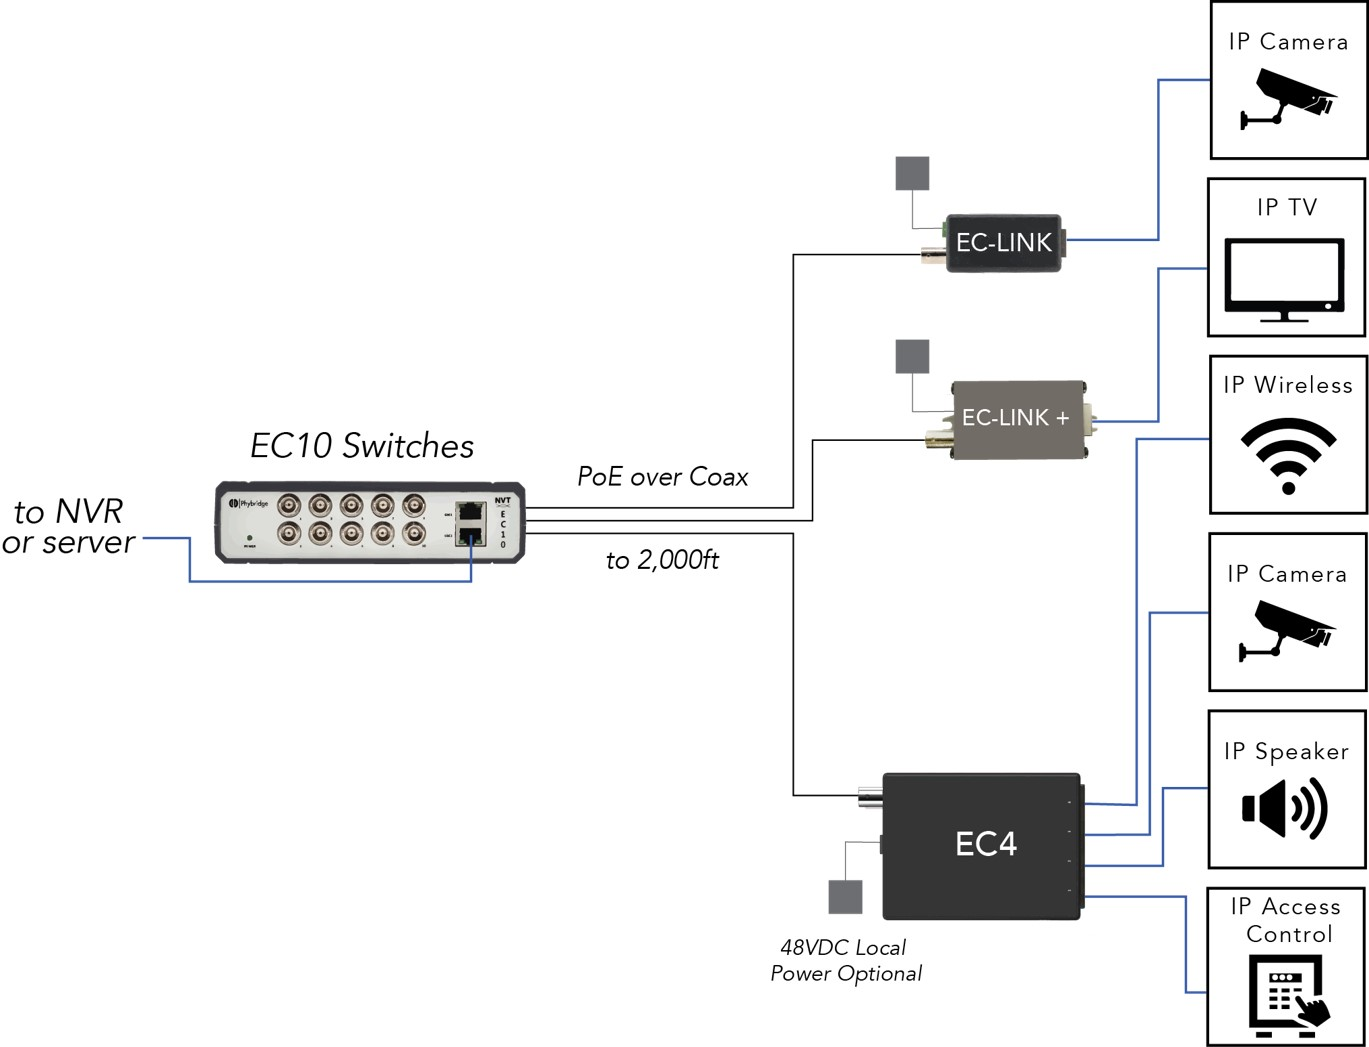 Ec 10 Port Unmanaged Ethernet Over Coax Switch